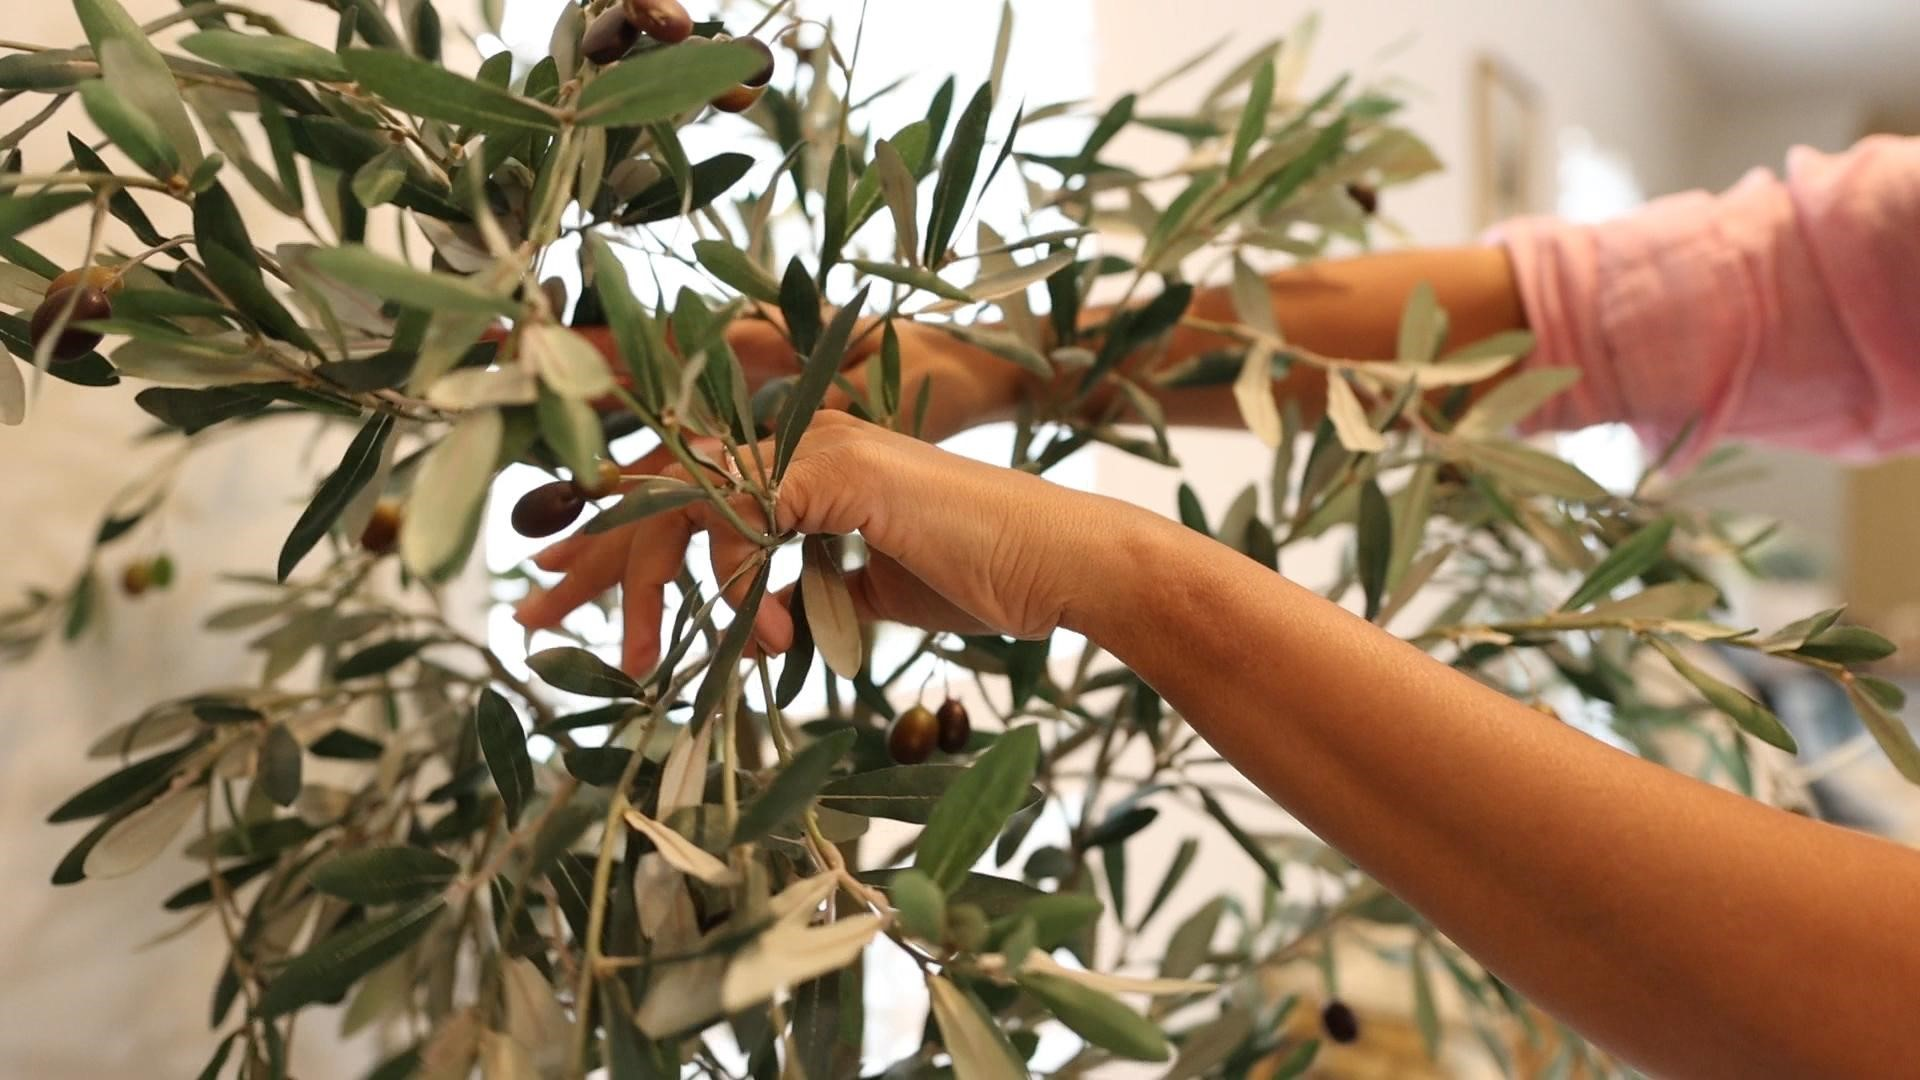 Amitha arranging the olive tree branches